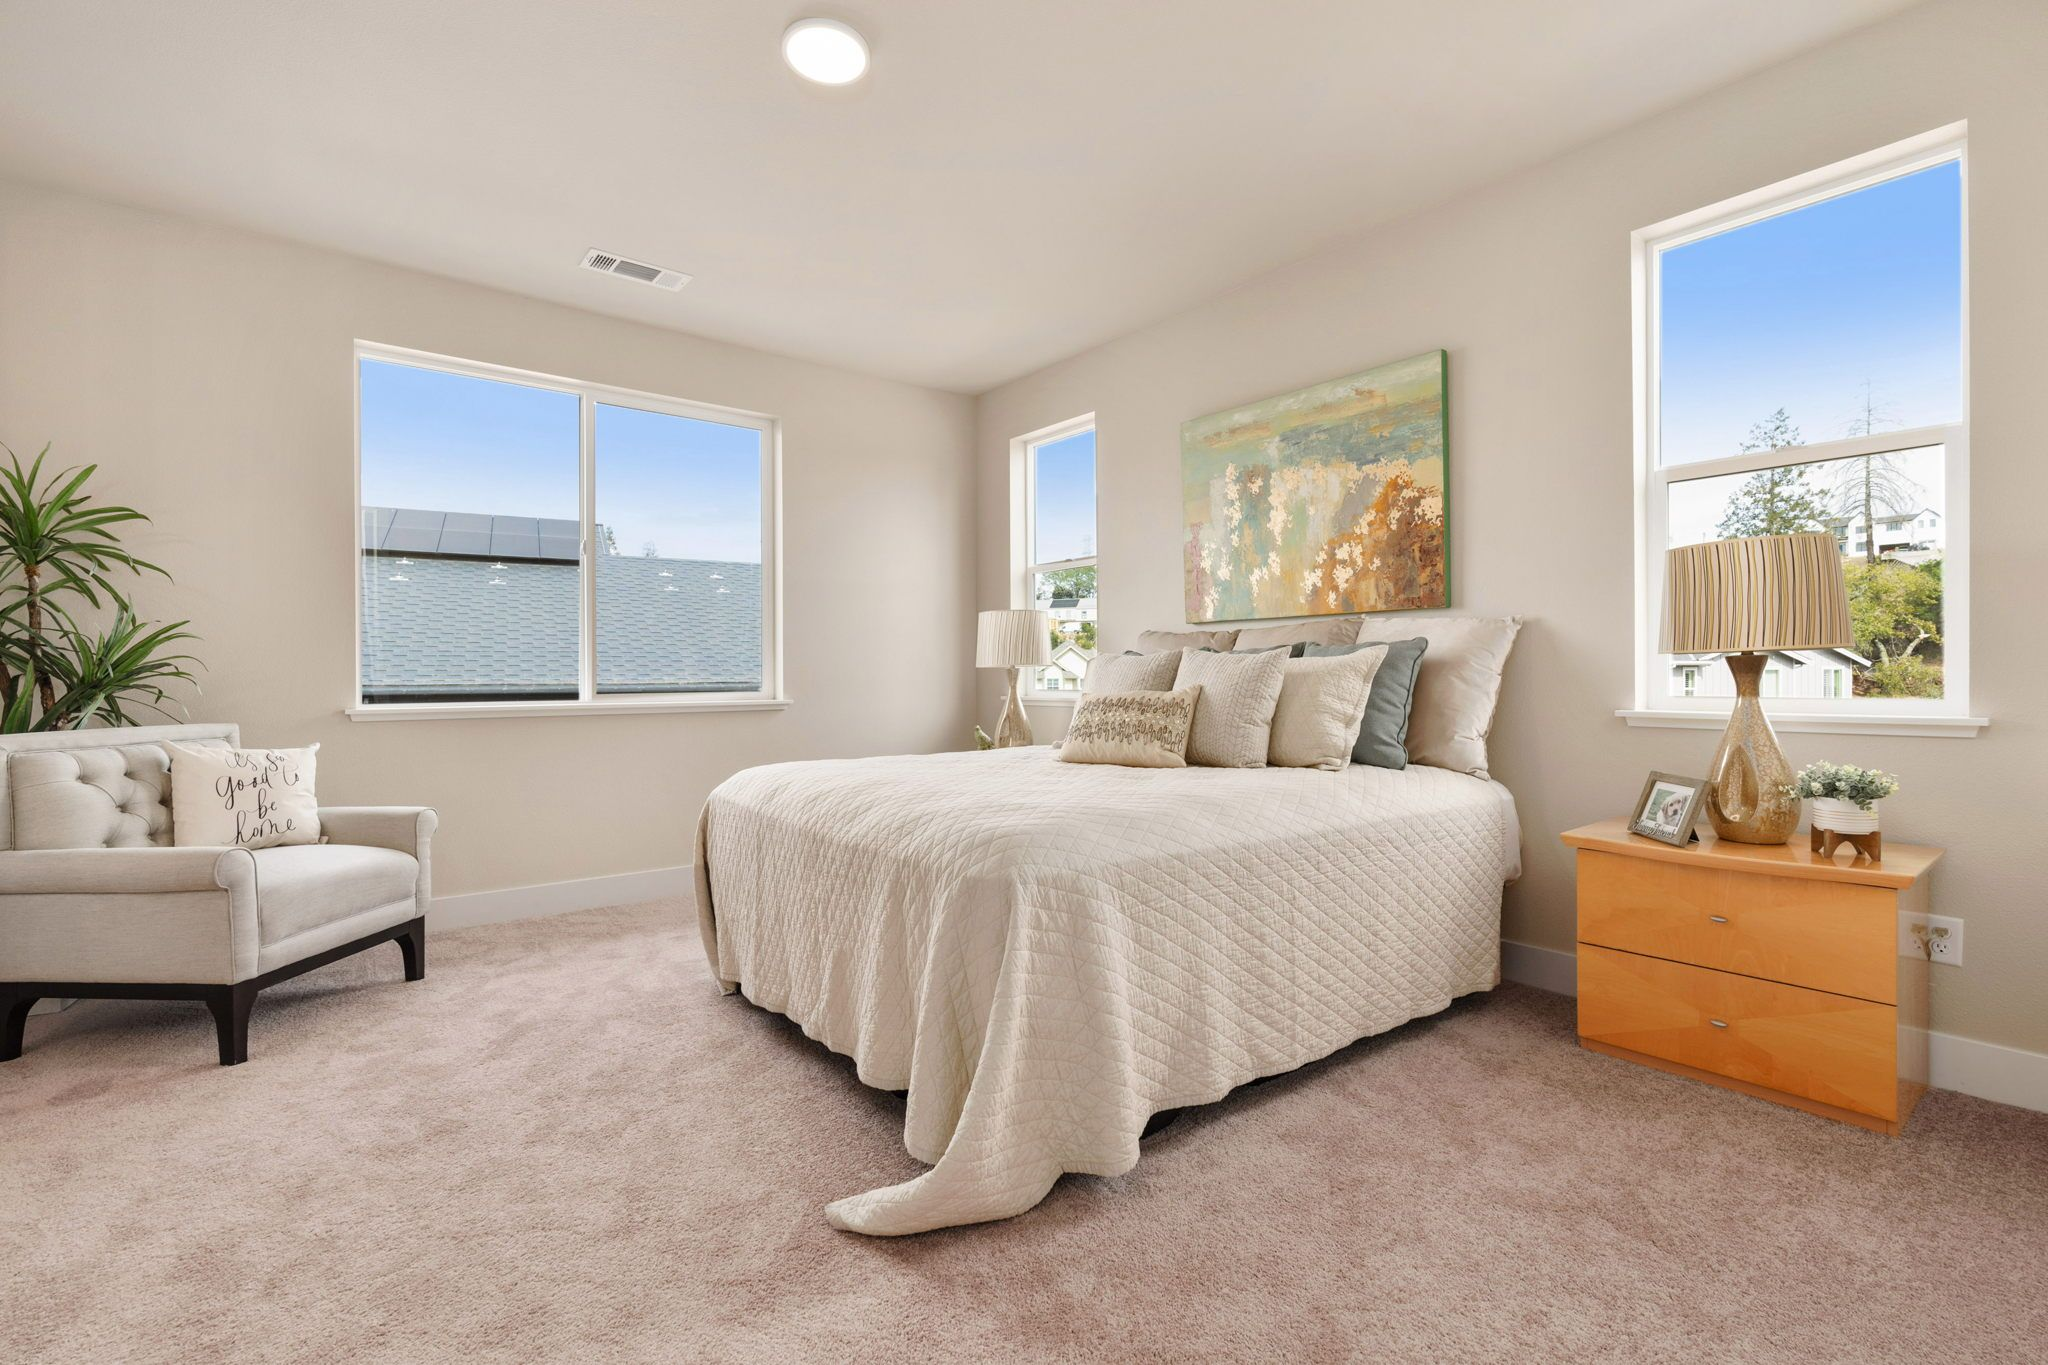 Bedroom featured in the Plan 32X By Christopherson Builders in Santa Rosa, CA